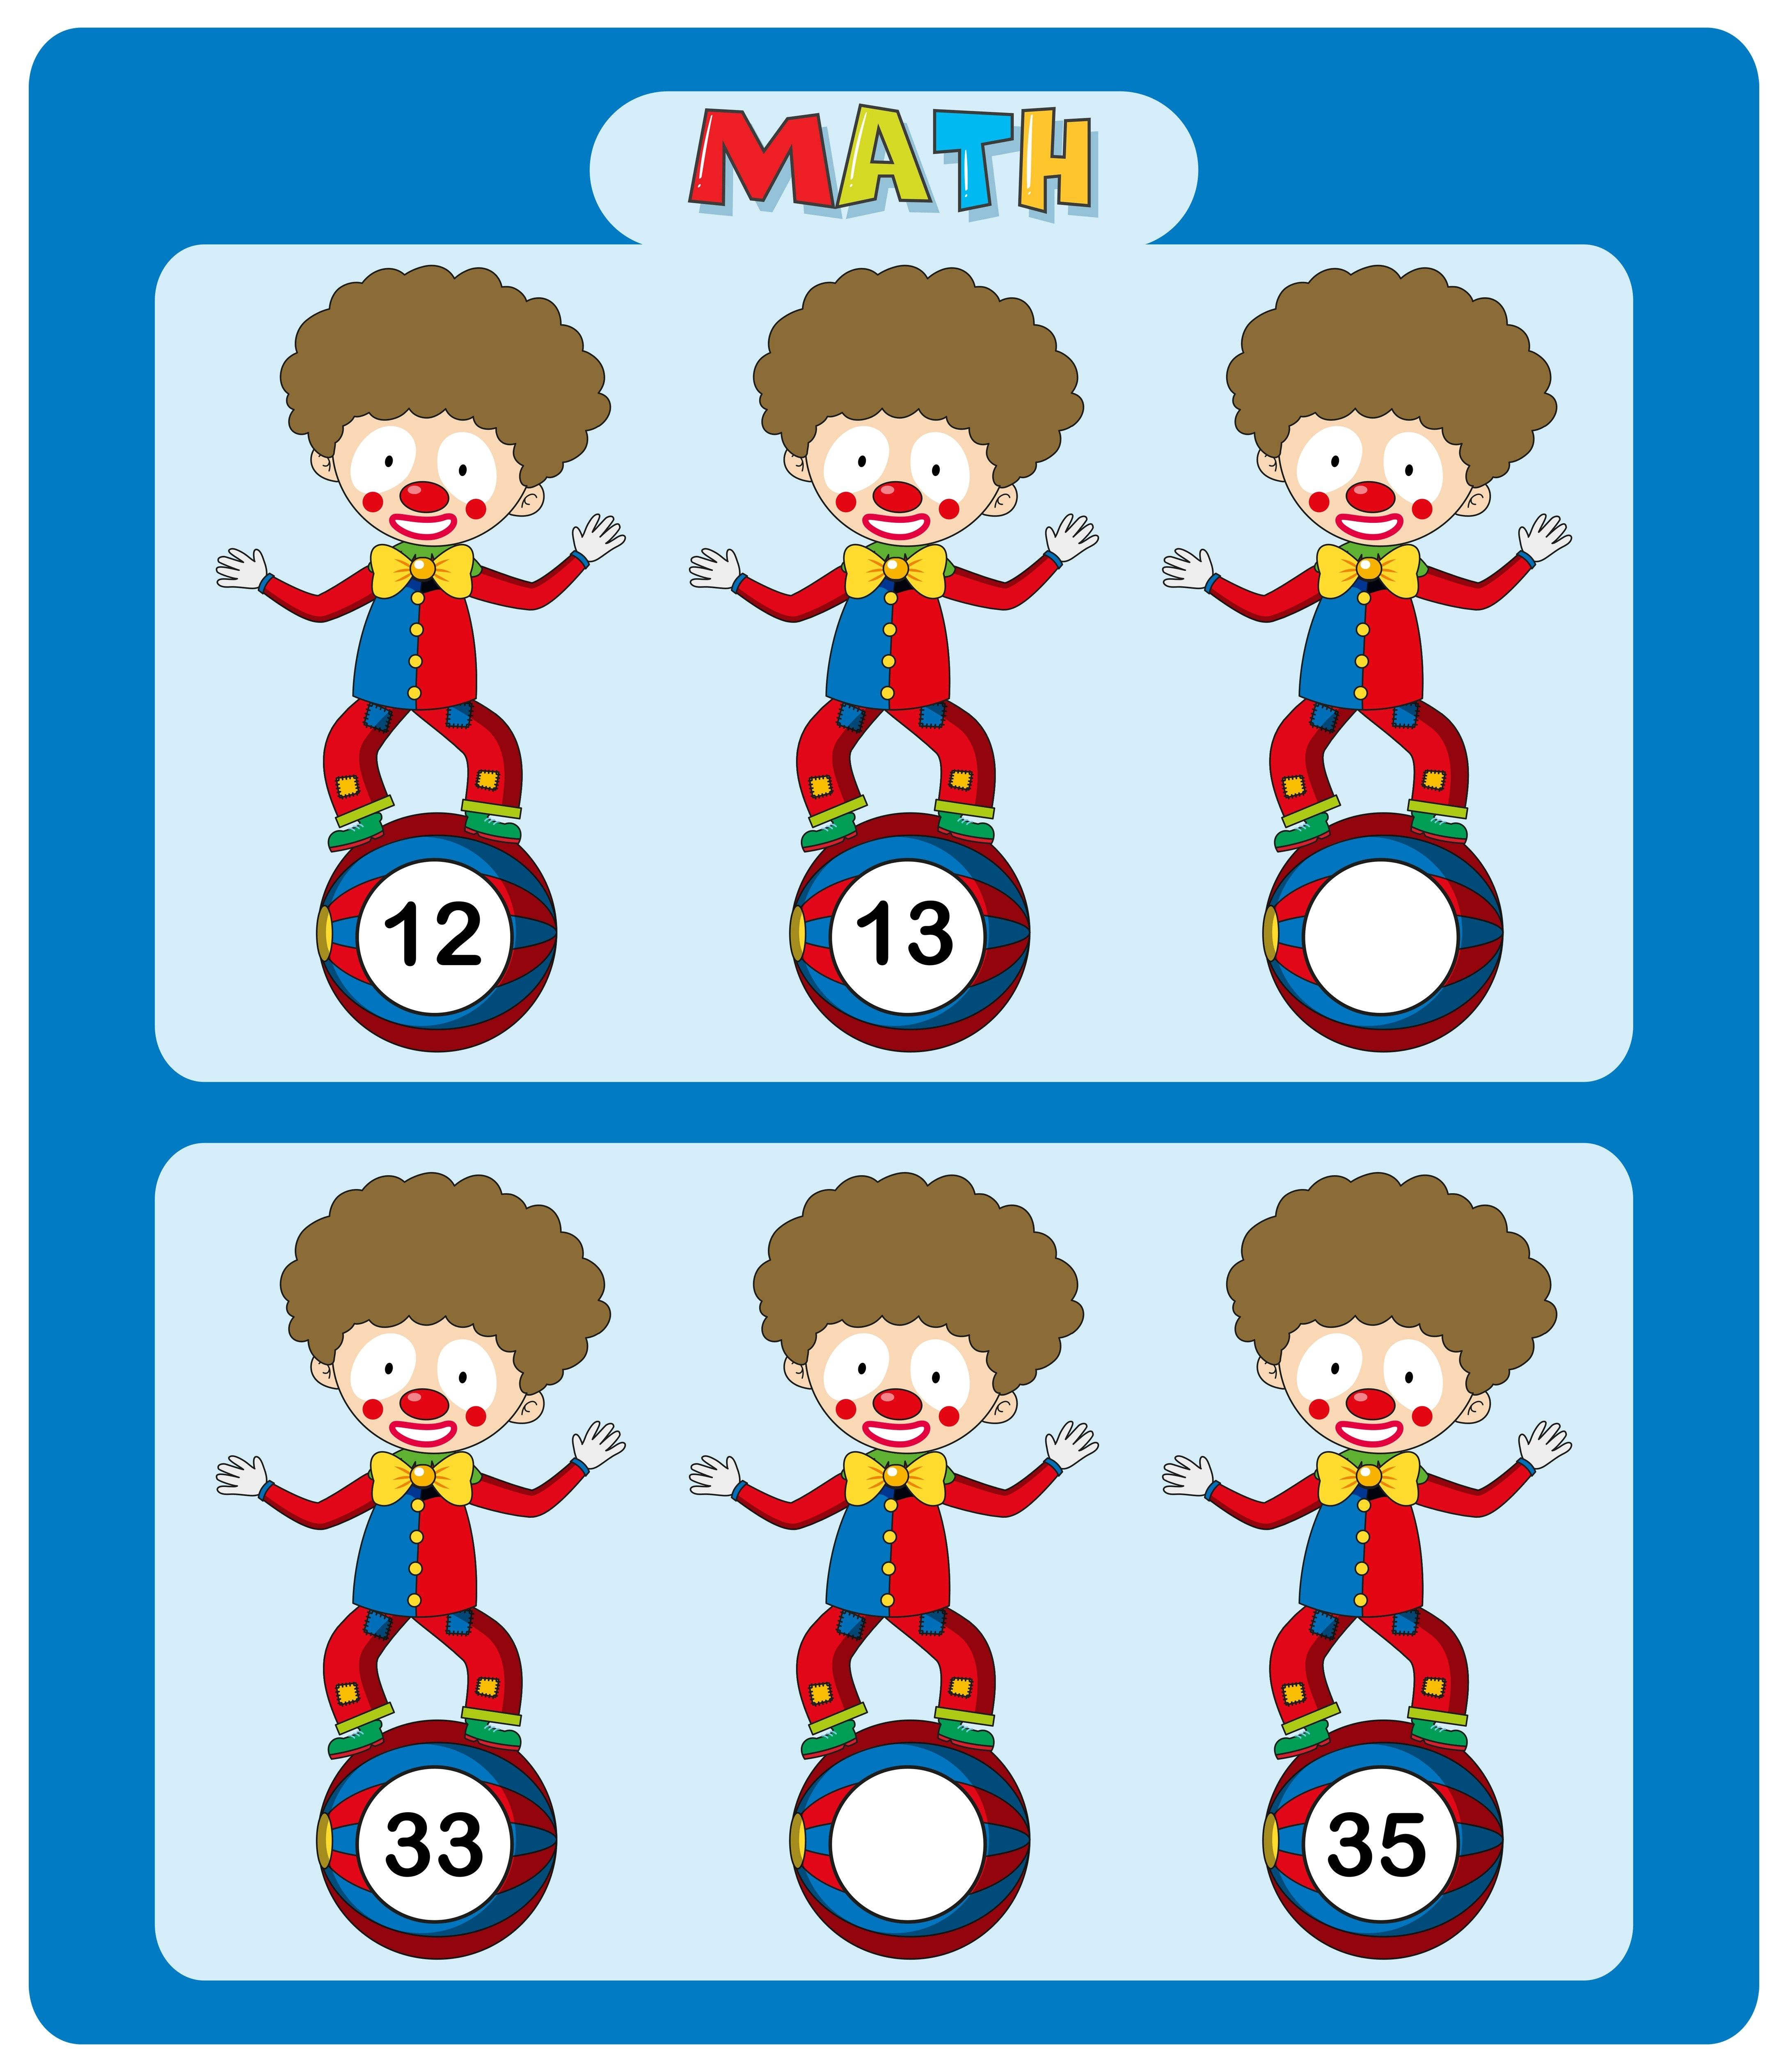 Math Worksheet Template With Circus Clowns